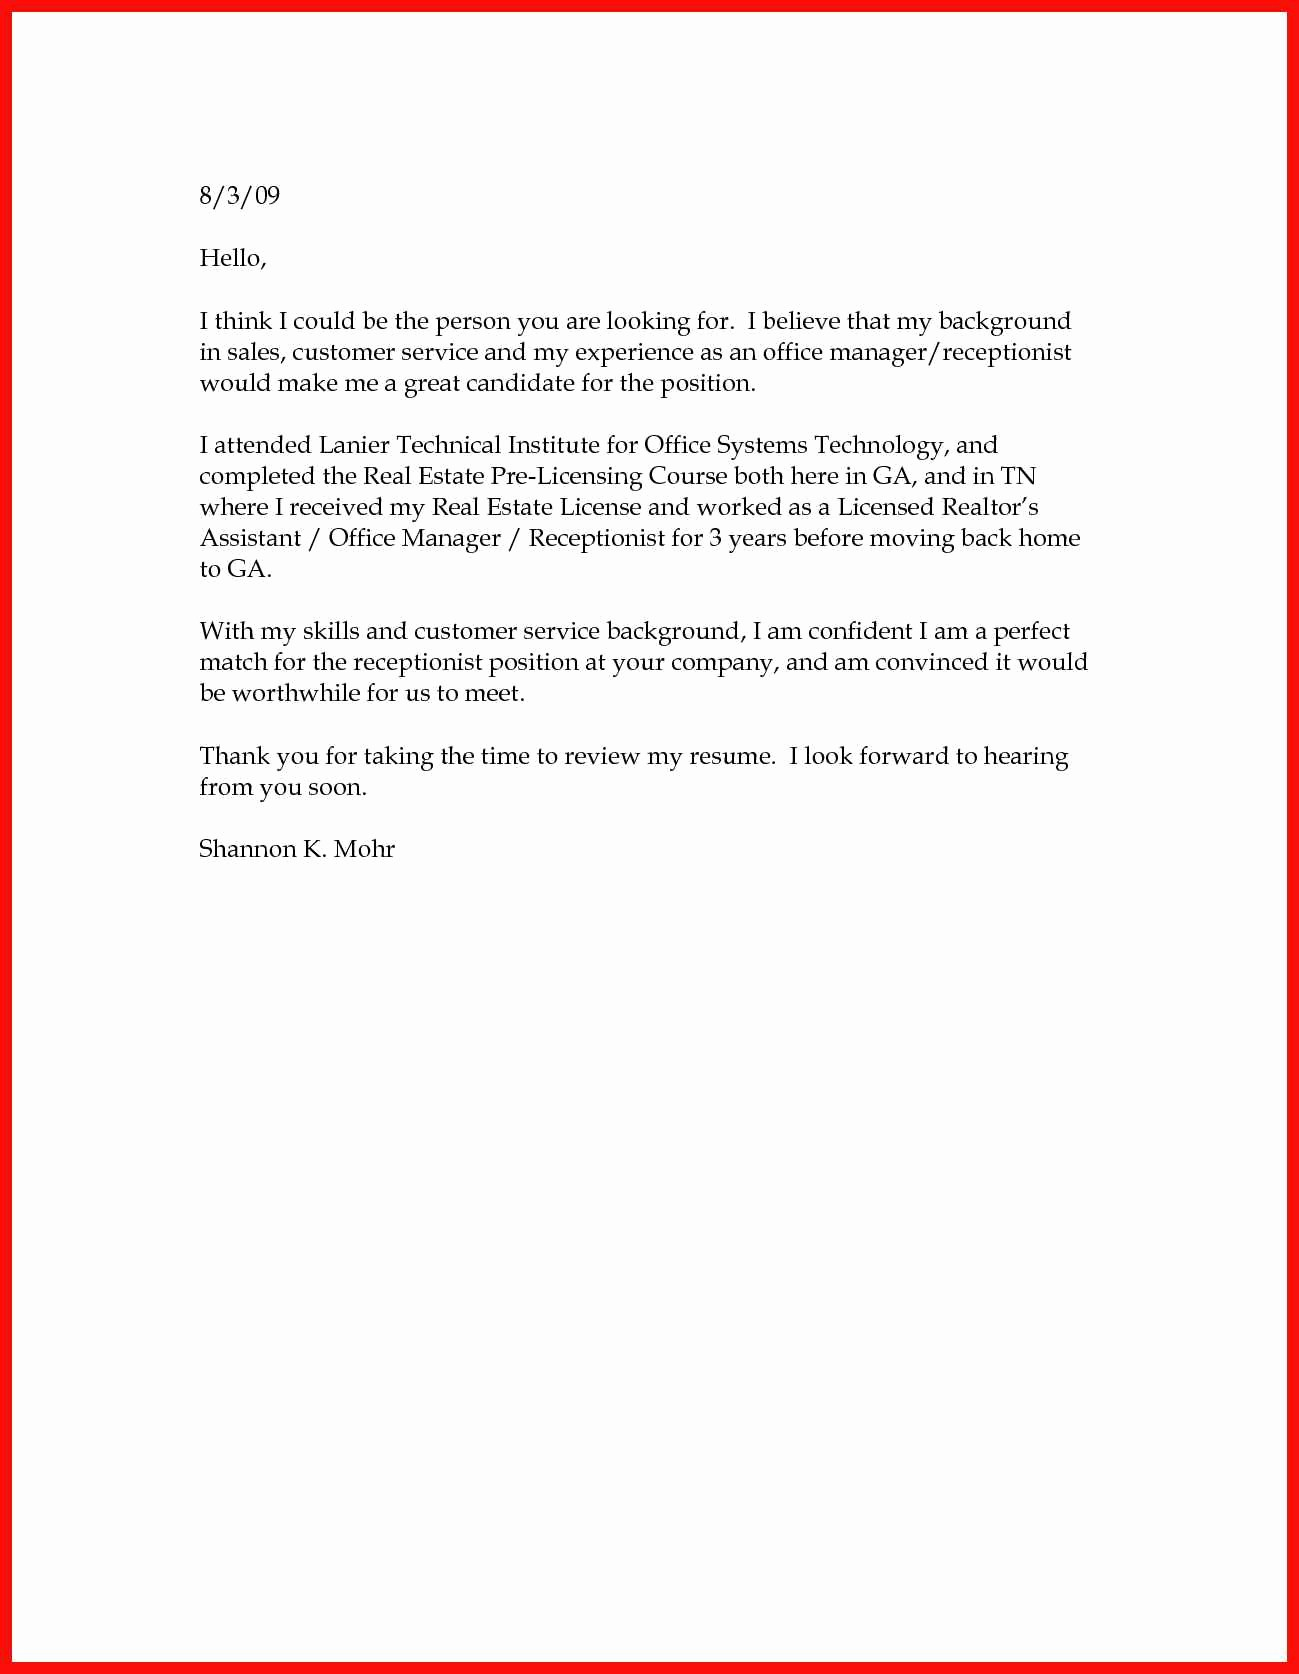 Sample Of Simple Cover Letter Unique Basic Cover Letter Sample